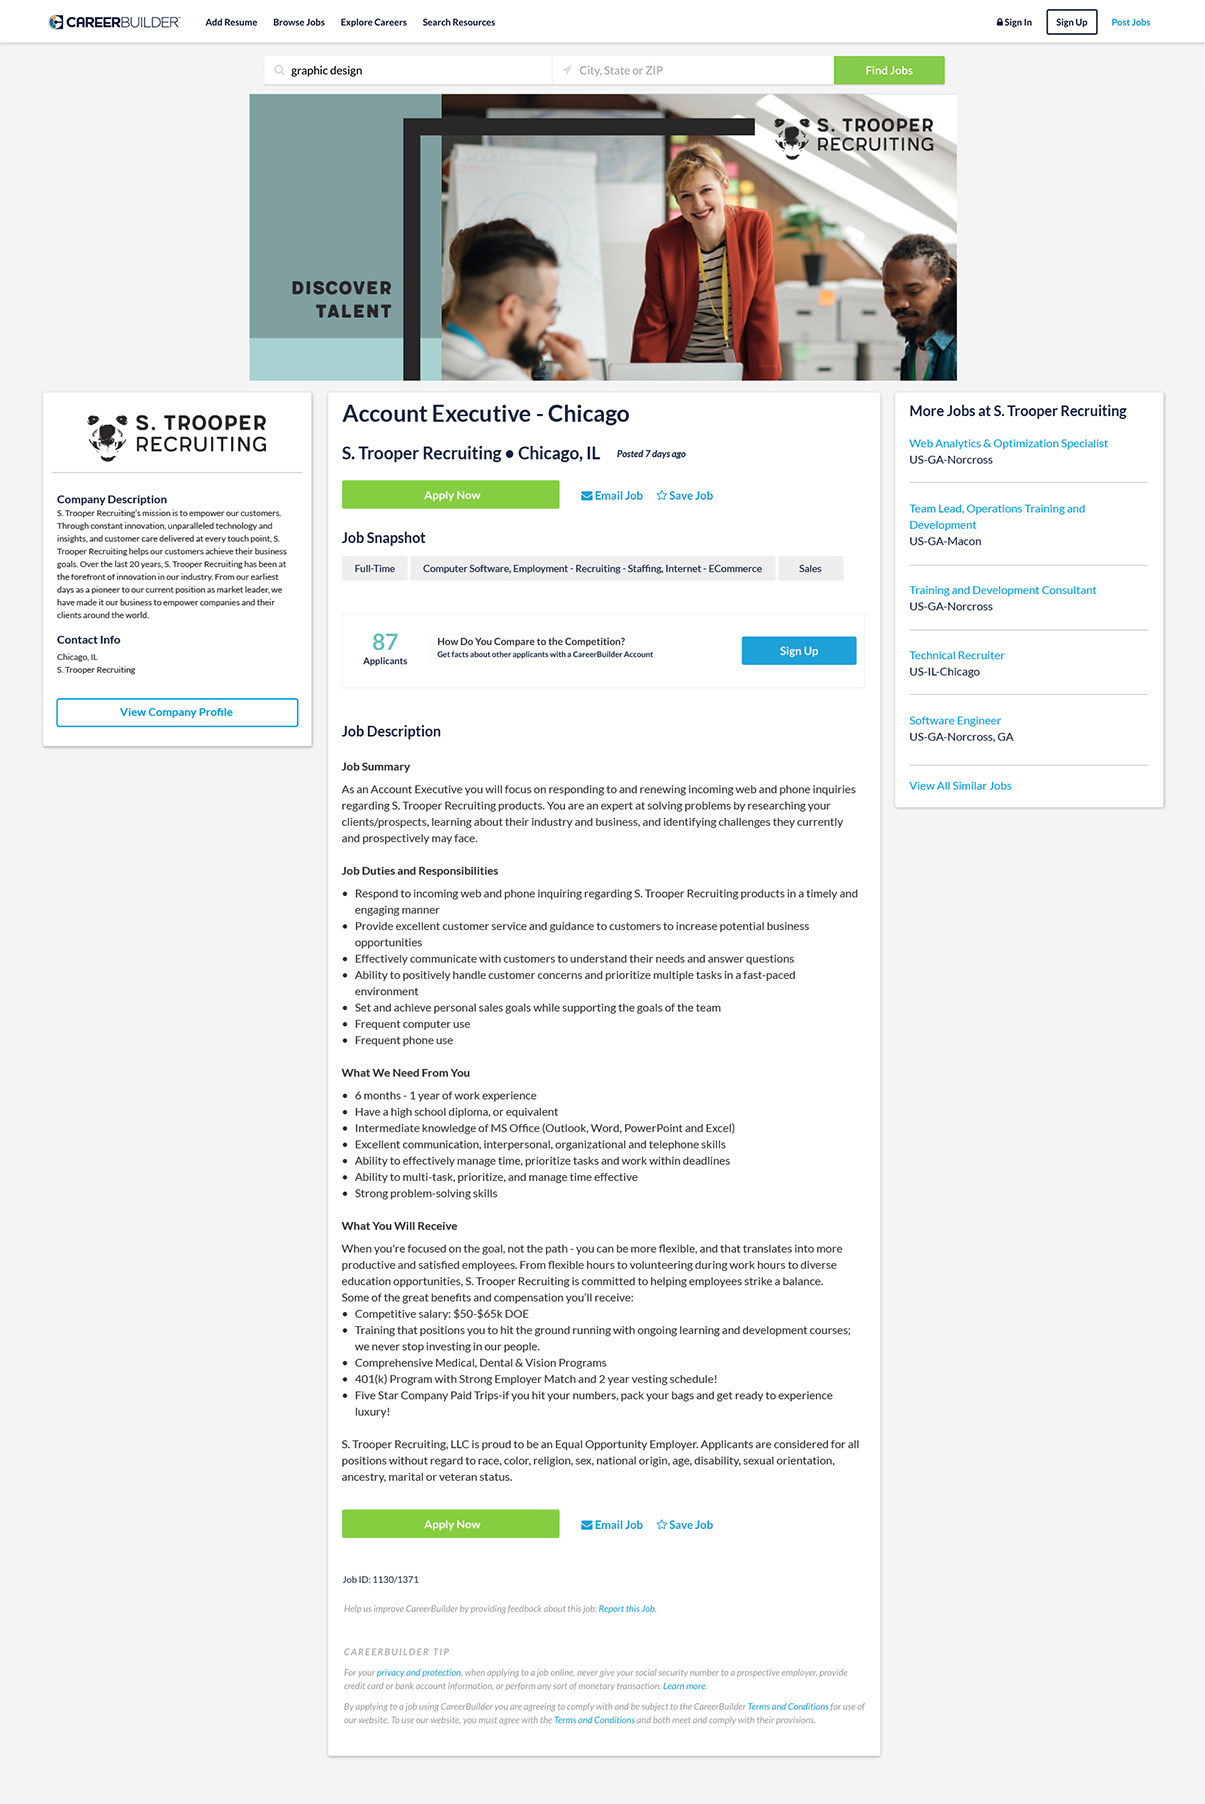 post jobs find quality job seekers fast careerbuilder for employers resume pro postings Resume Careerbuilder Post Resume